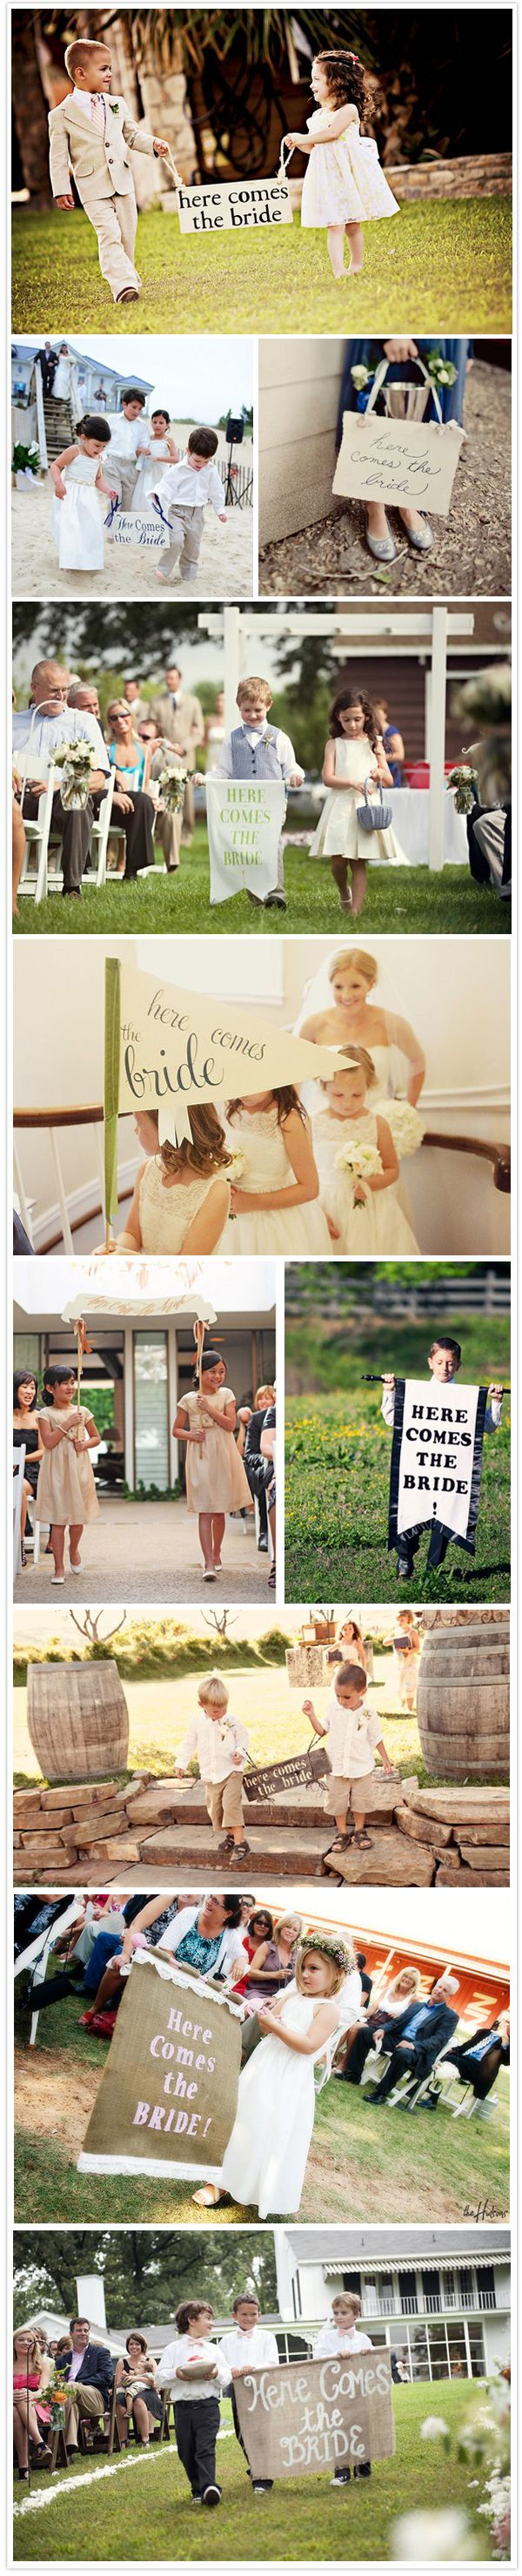 st_here_comes_the_bride_signs.jpg 600×2,959 ピクセル